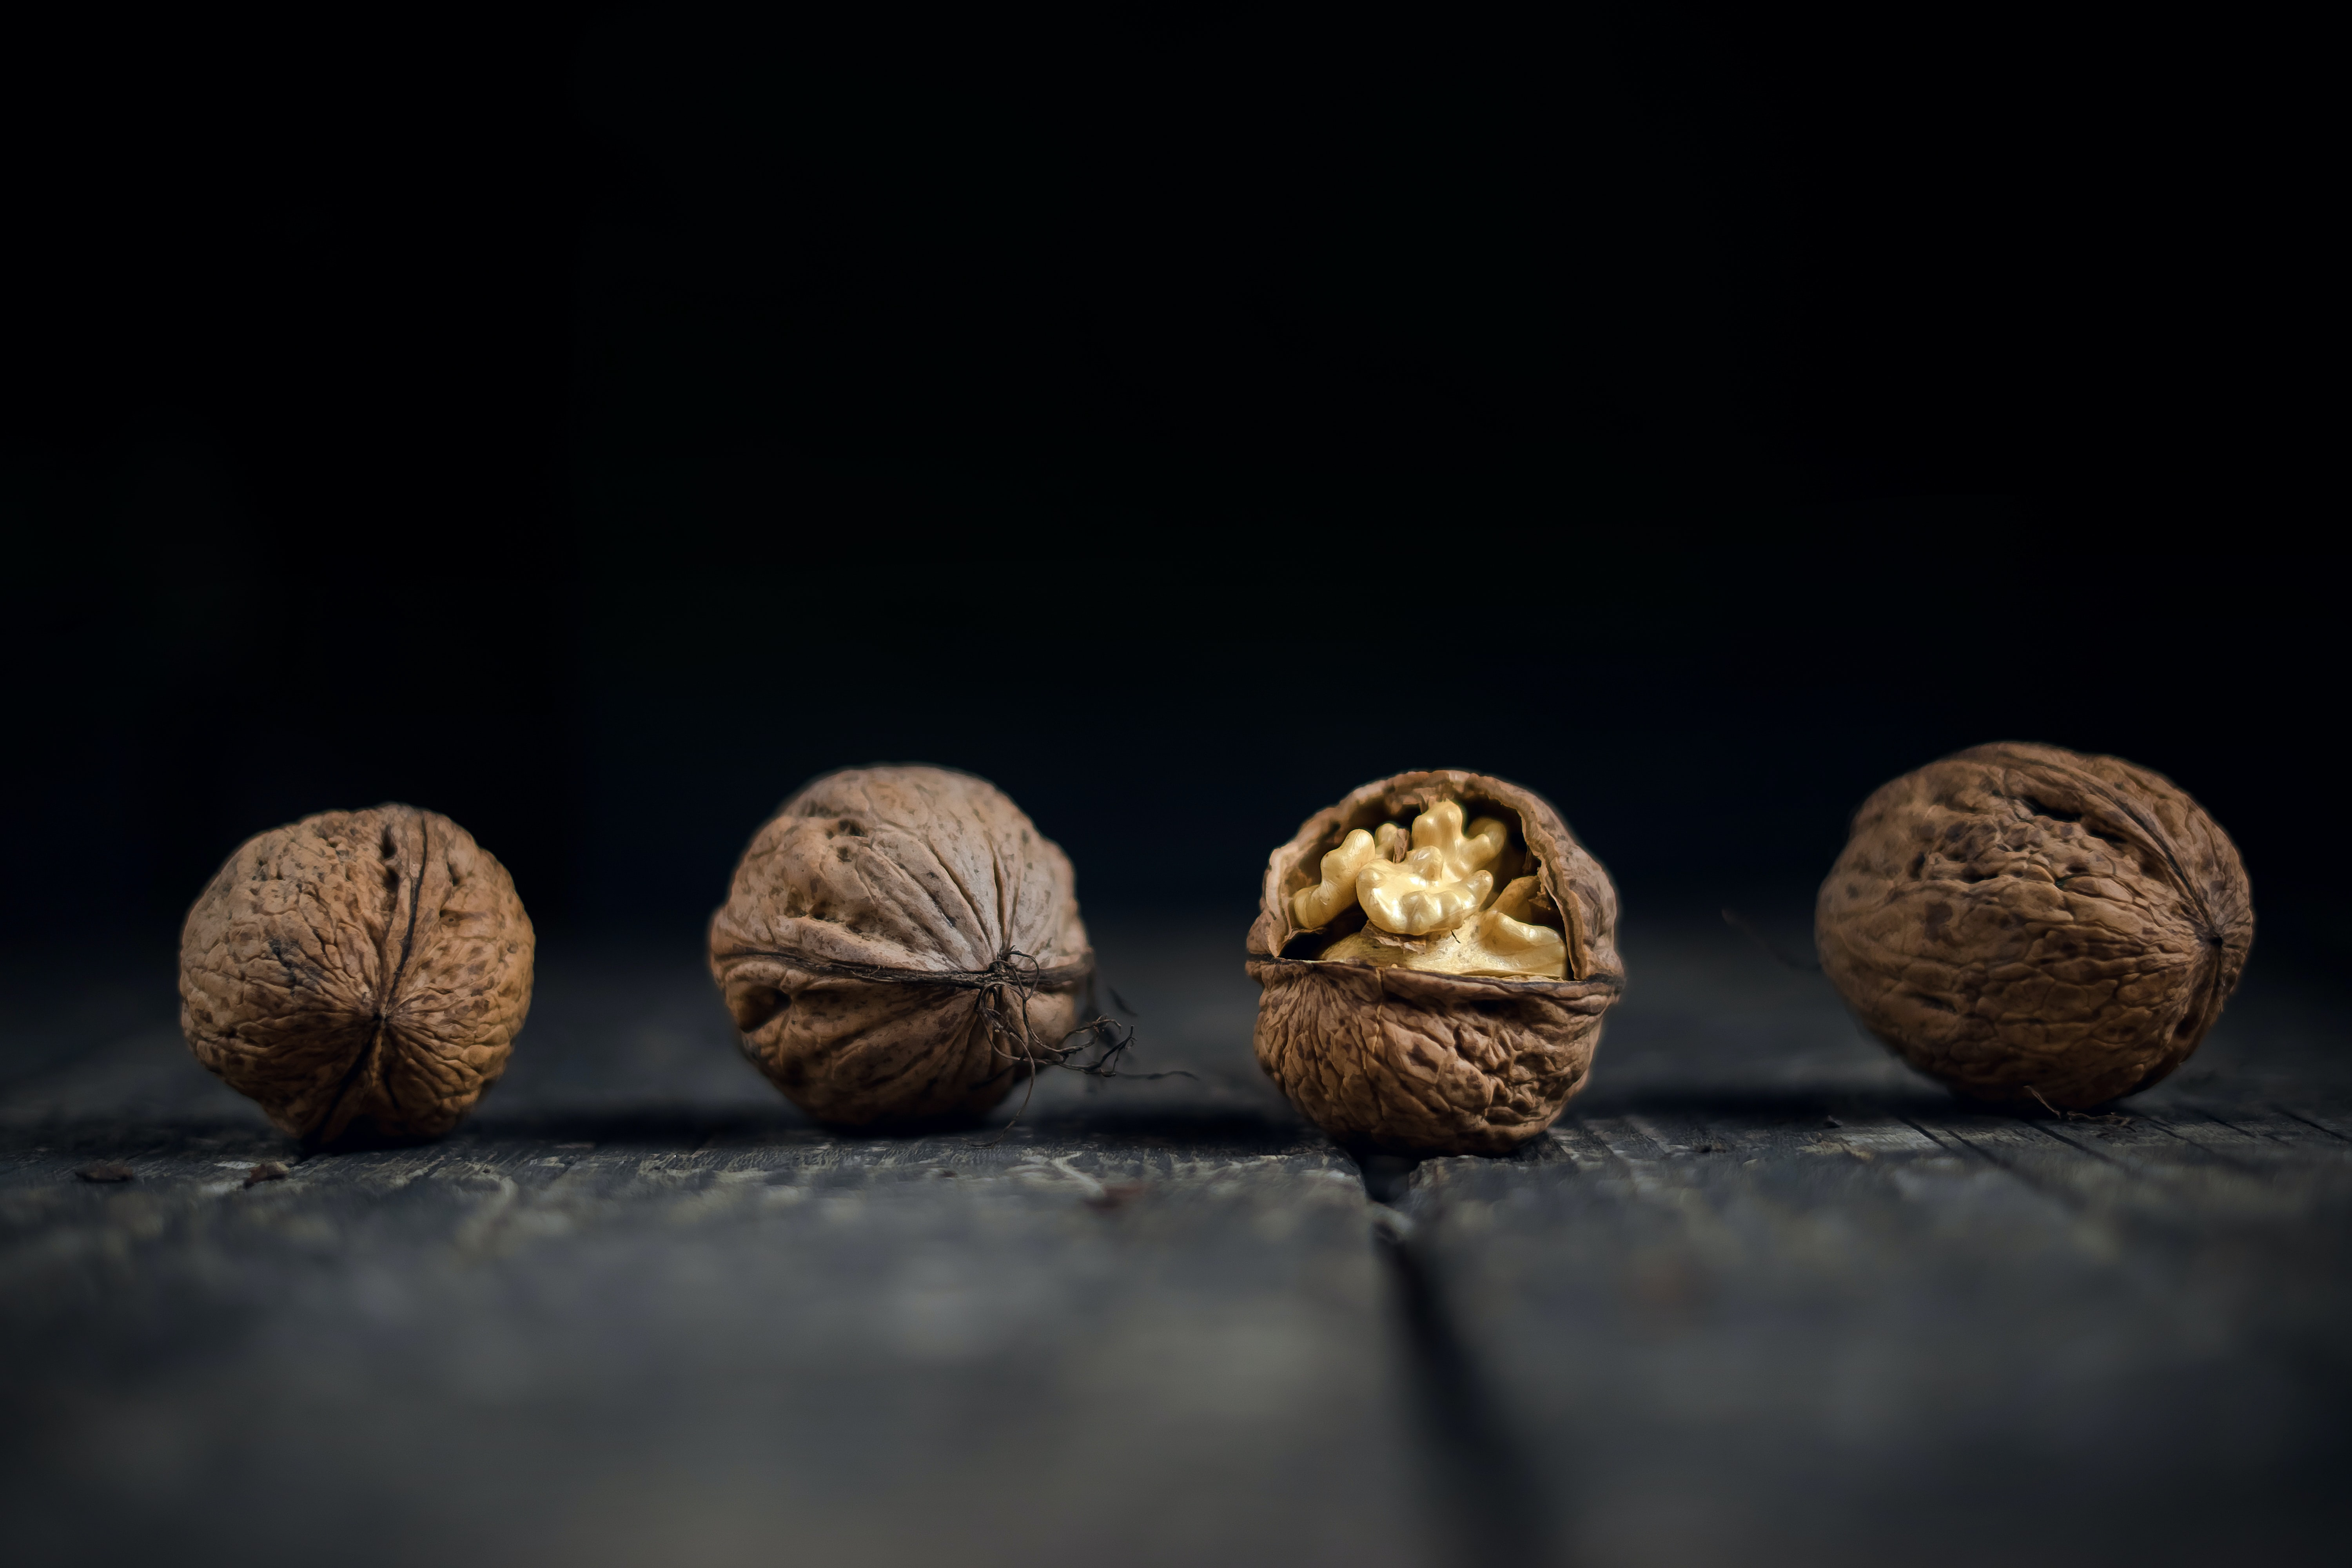 close-up photo of four brown walnuts